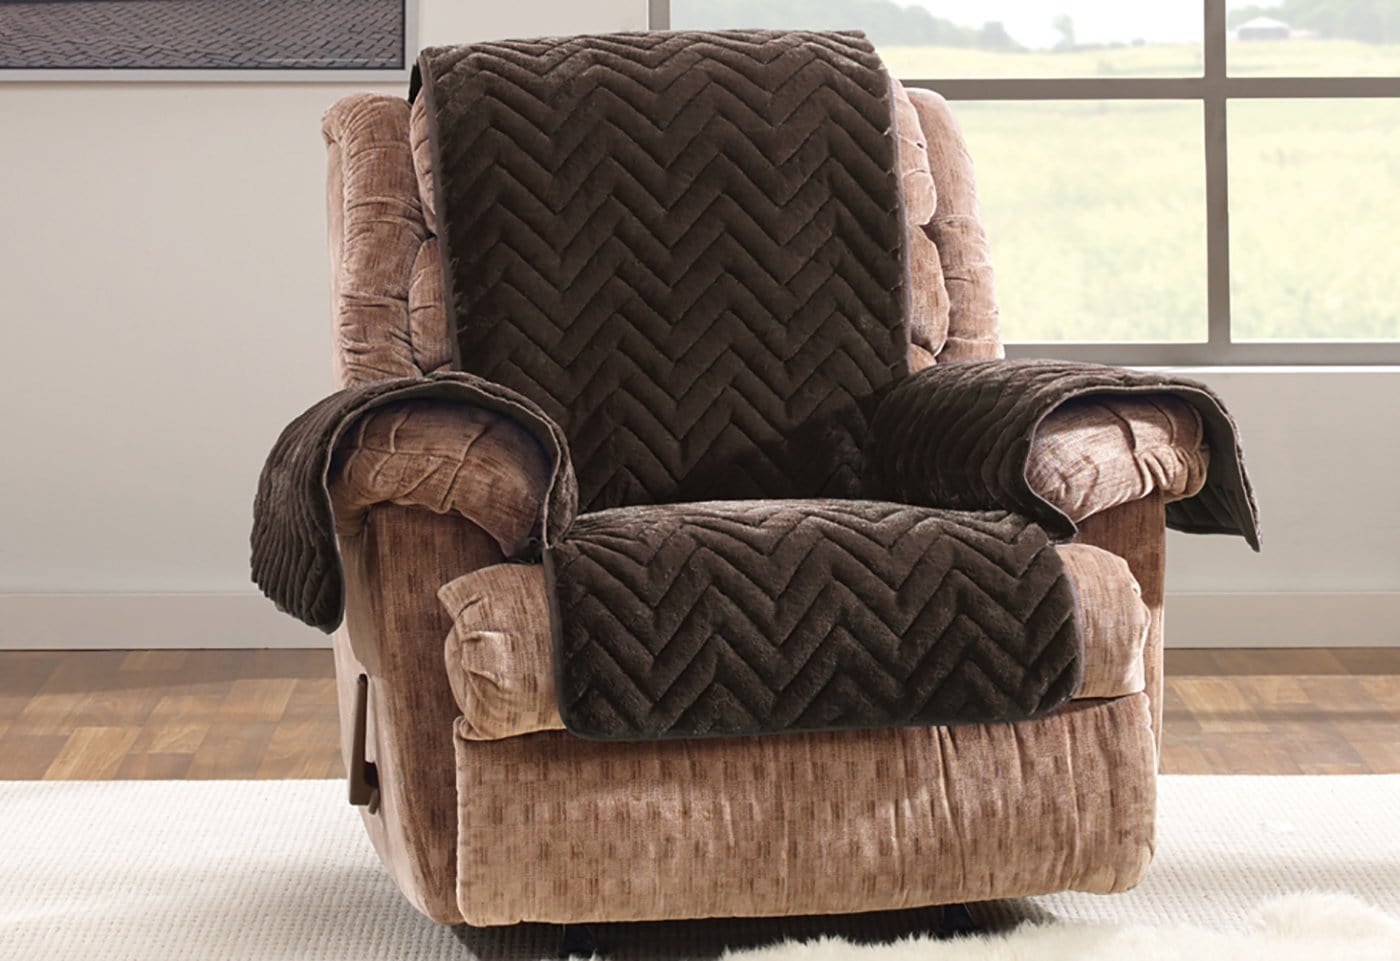 Faux Fur Chevron Recliner Furniture Cover 100% Polyester Pet Furniture Cover Machine Washable - Recliner / Chocolate